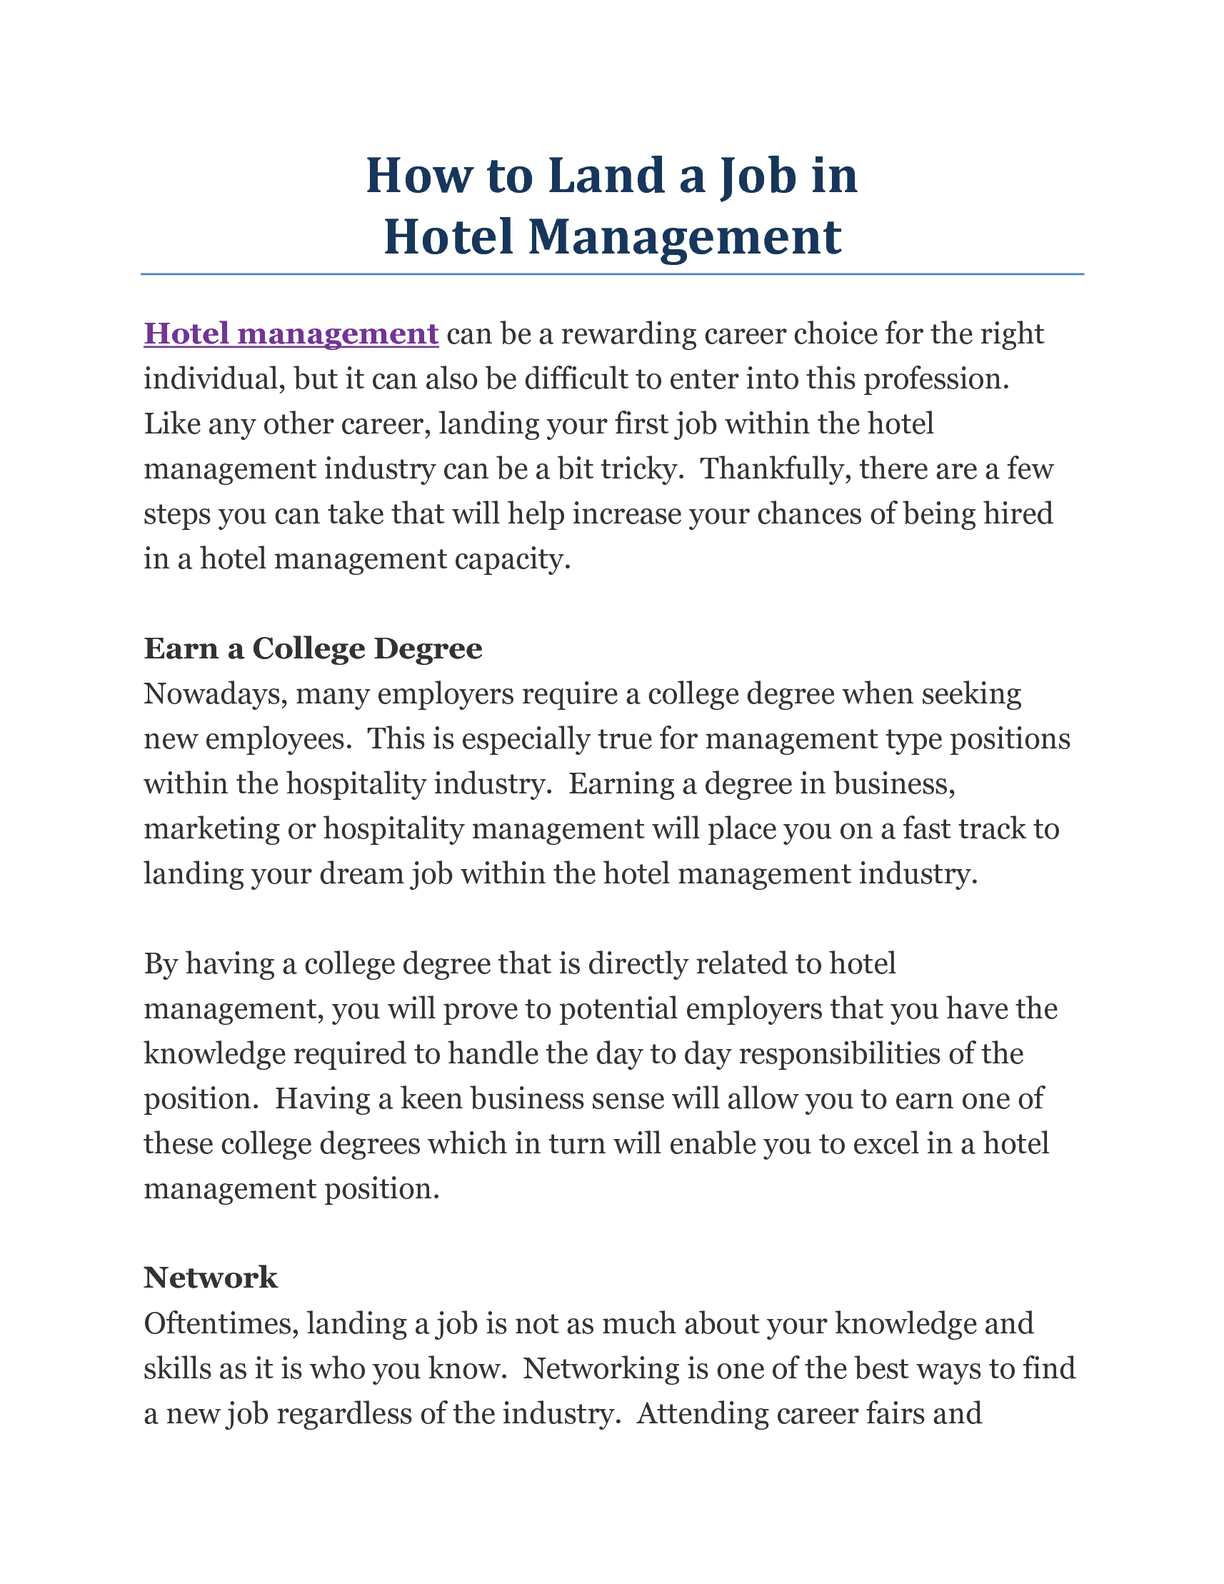 Calaméo - How to Land a Job in Hotel Management